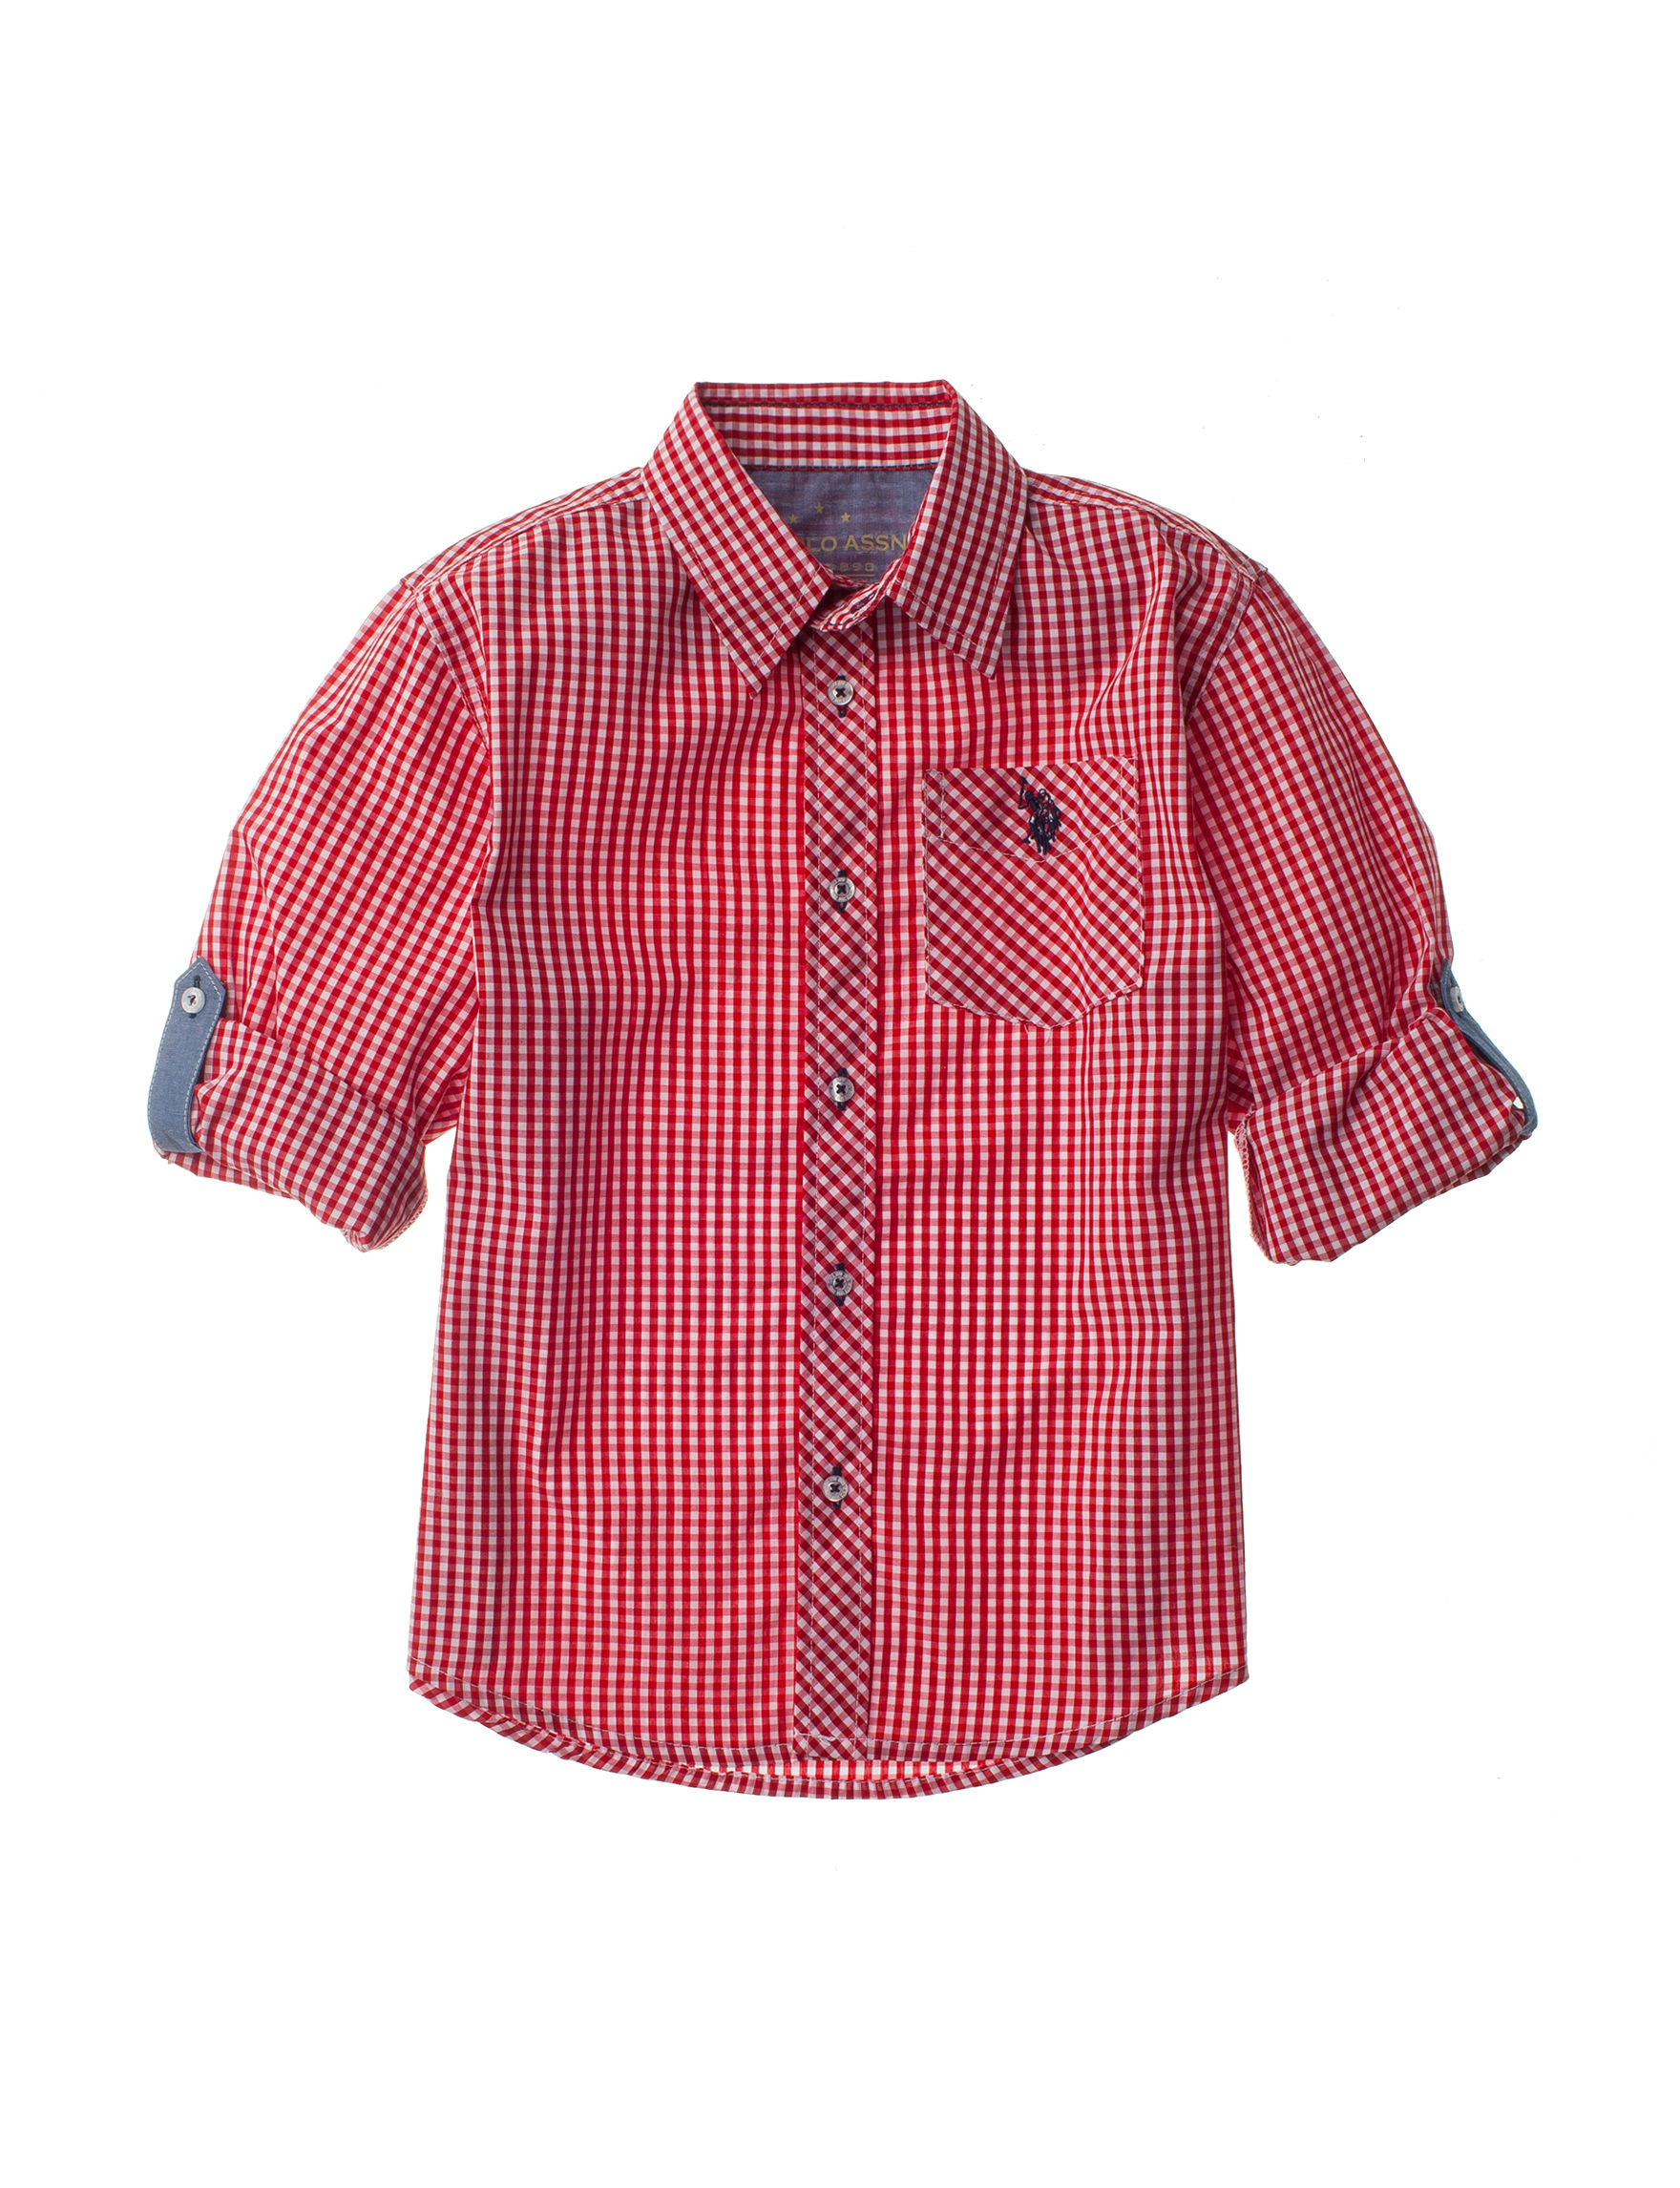 U.S. Polo Assn. Red